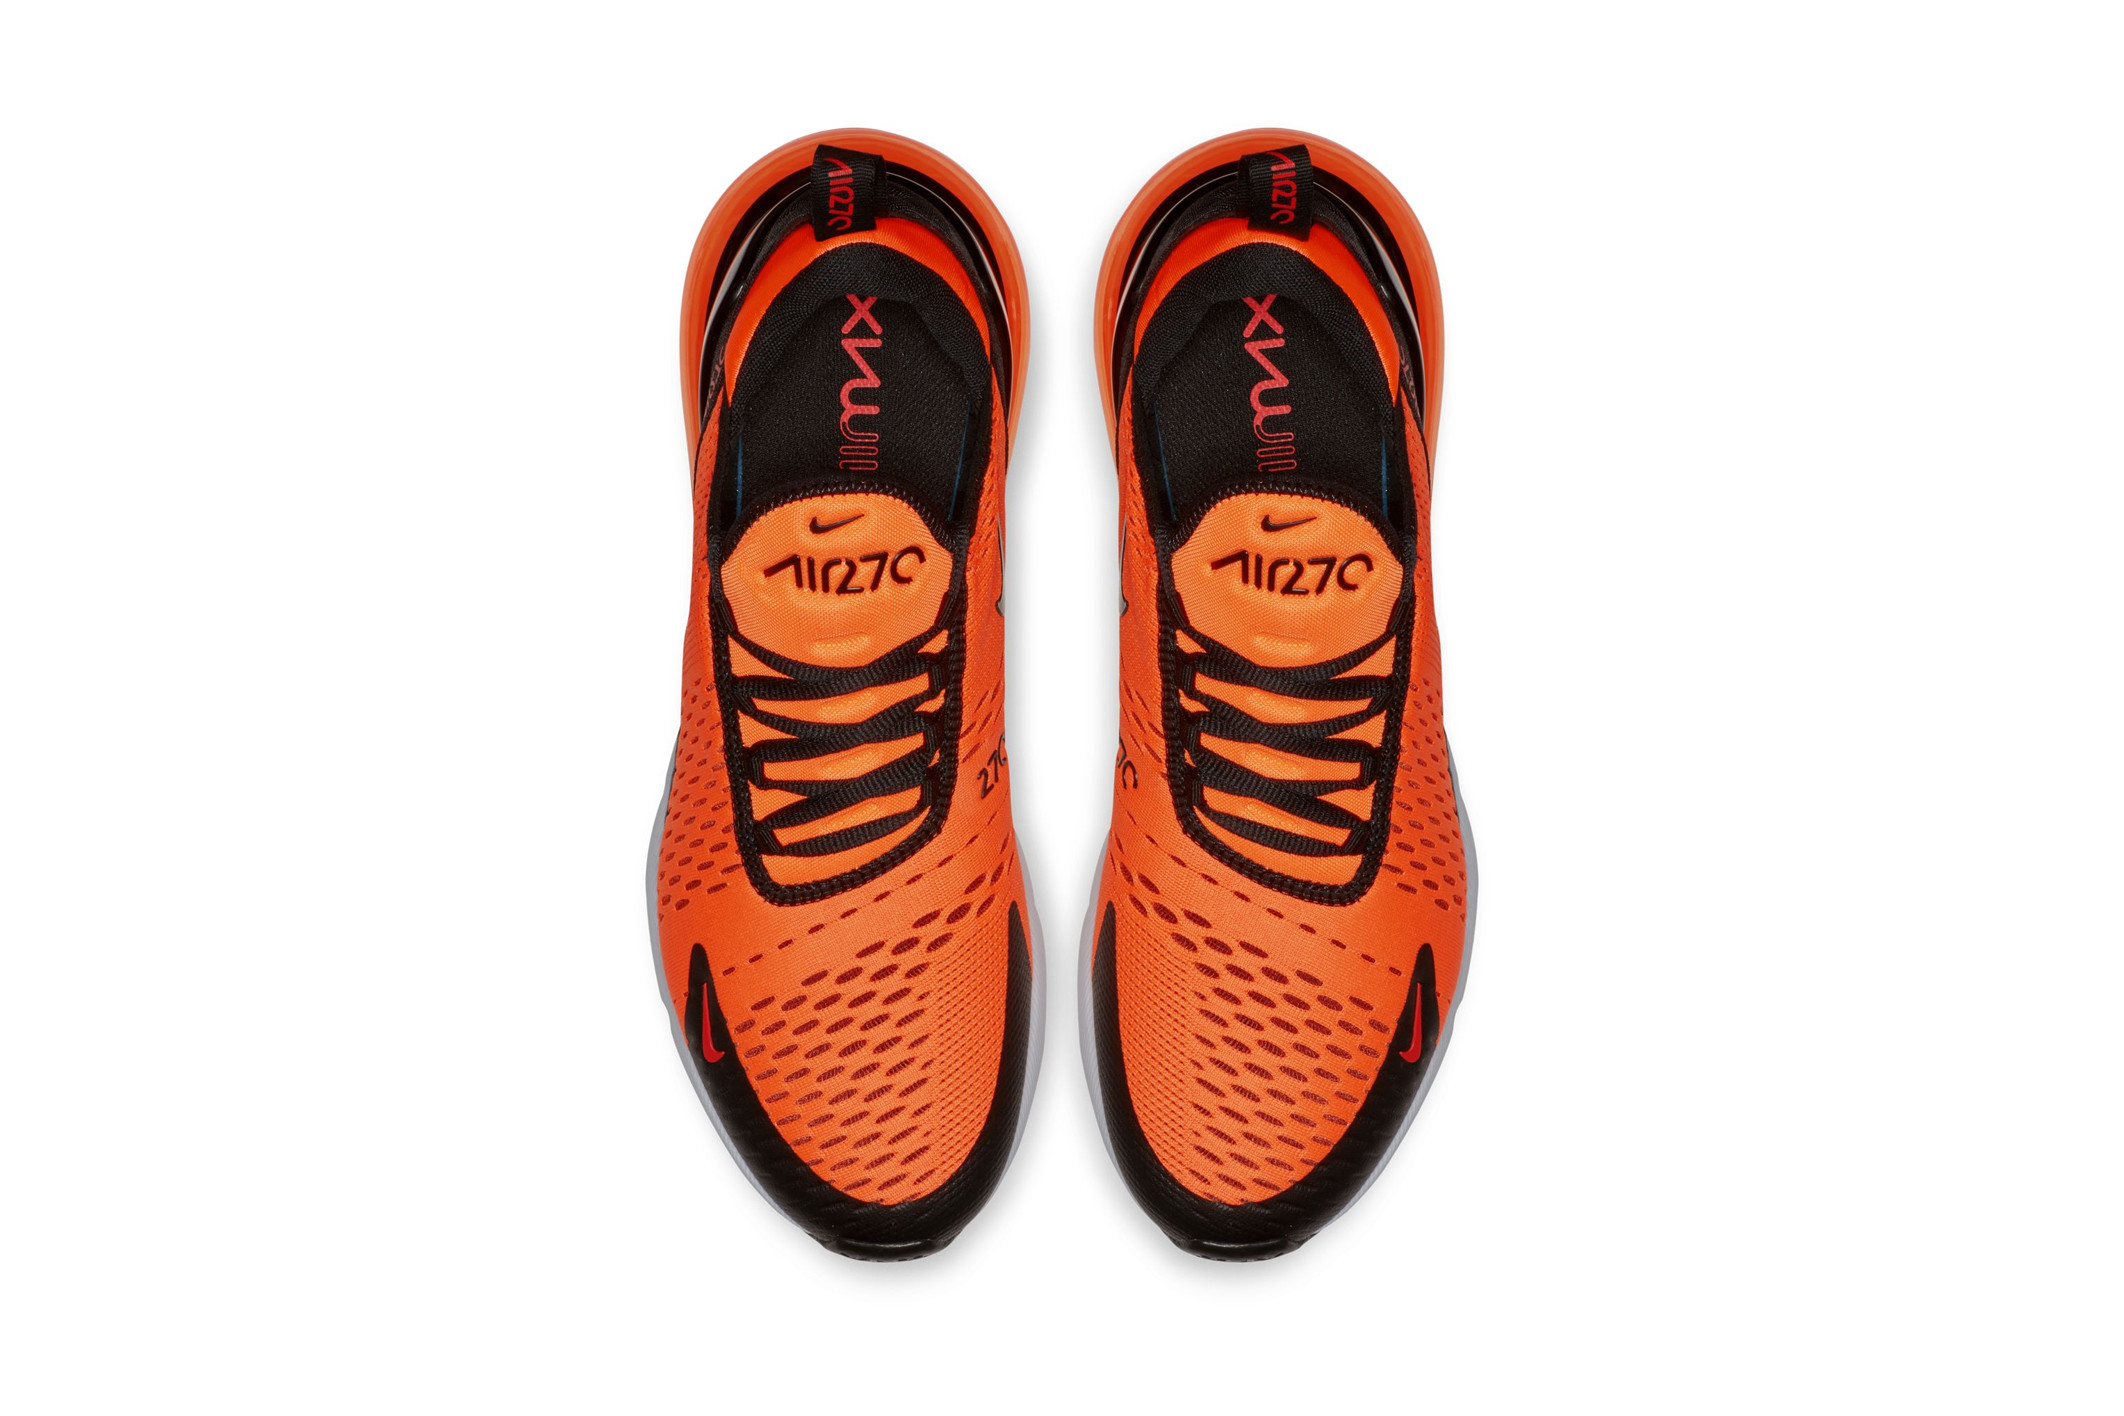 https---hypebeast.com-image-2018-08-nike-gives-the-air-max-270-a-total-orange-rework-04